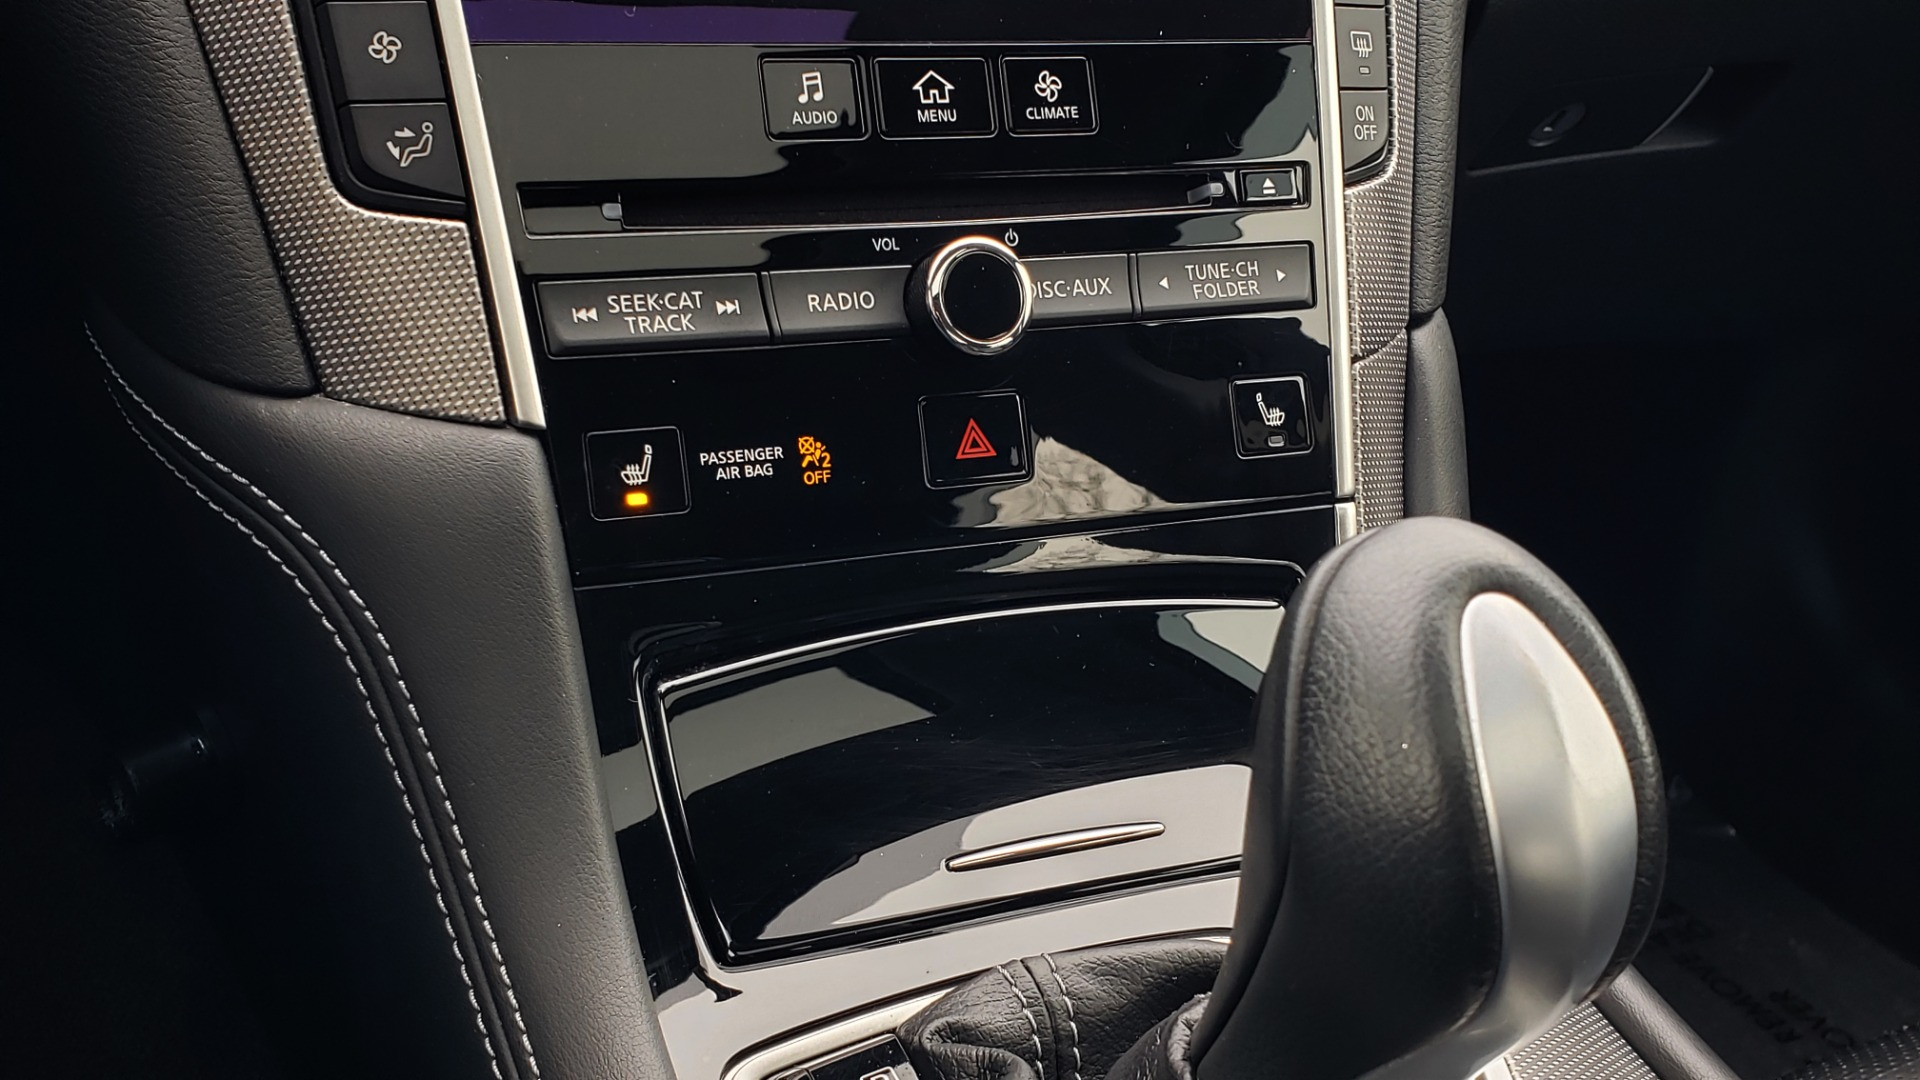 Used 2016 INFINITI Q50 3.0t PREMIUM SPORT AWD / NAV / SUNROOF / HTD STS / REARVIEW for sale Sold at Formula Imports in Charlotte NC 28227 49